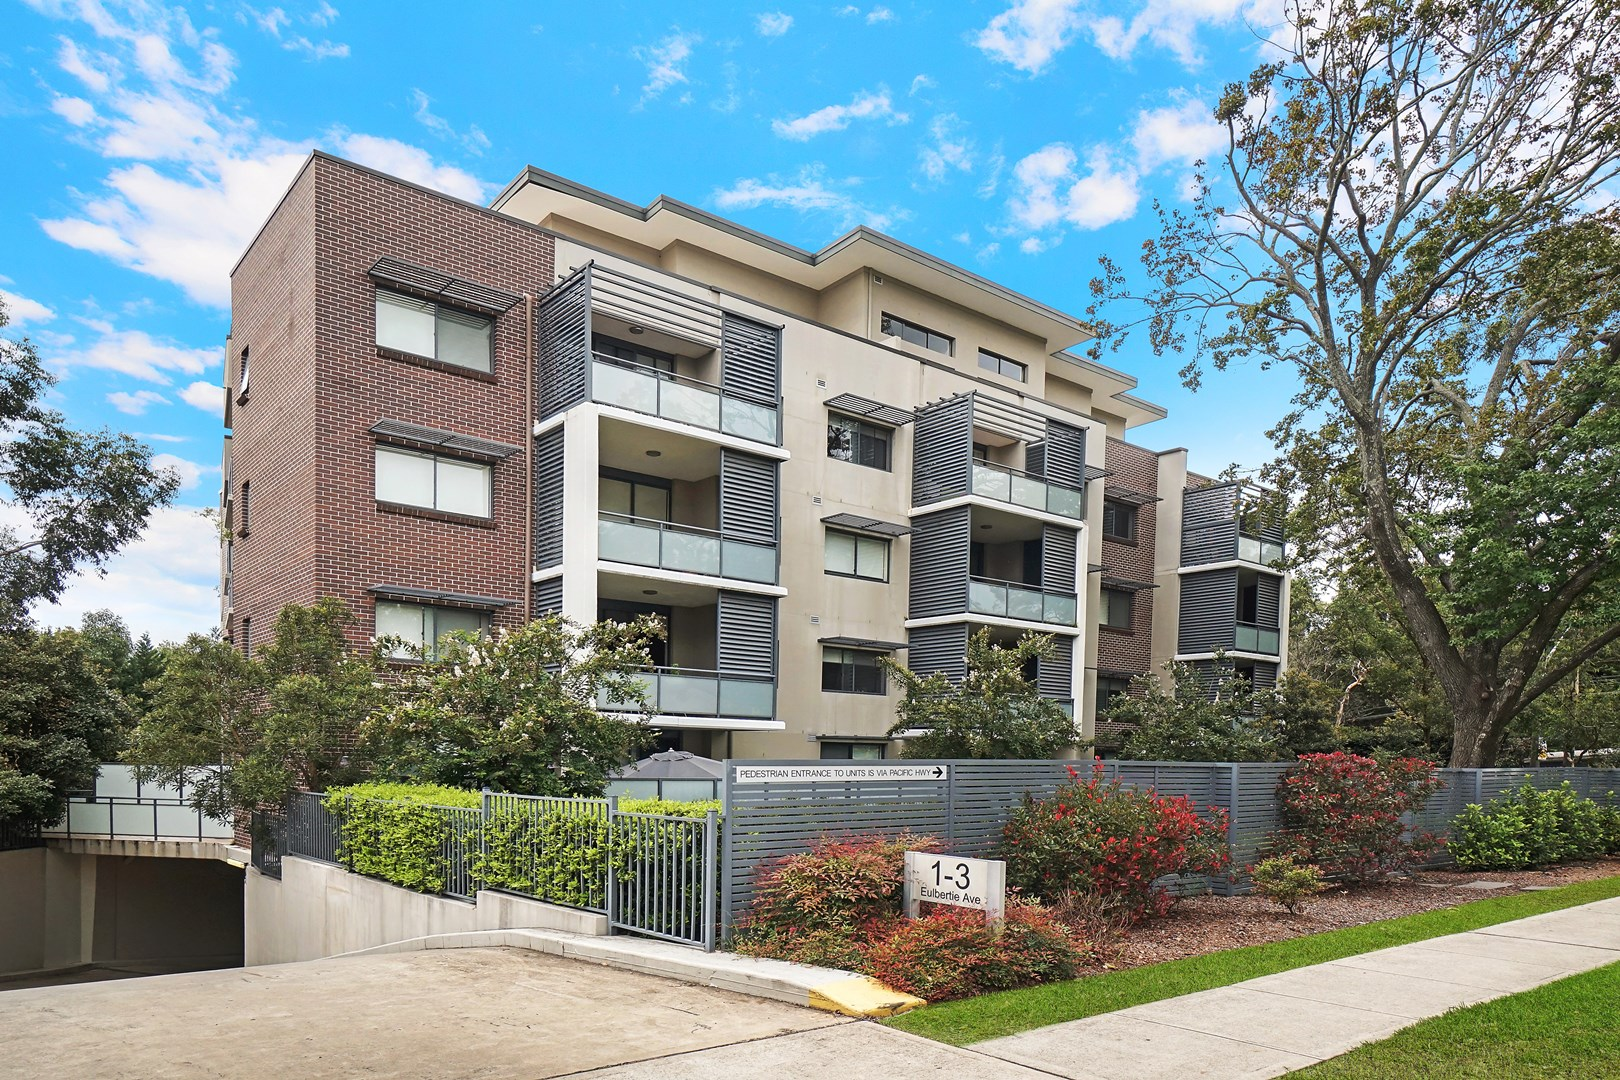 35/1-3 Eulbertie Avenue, Warrawee